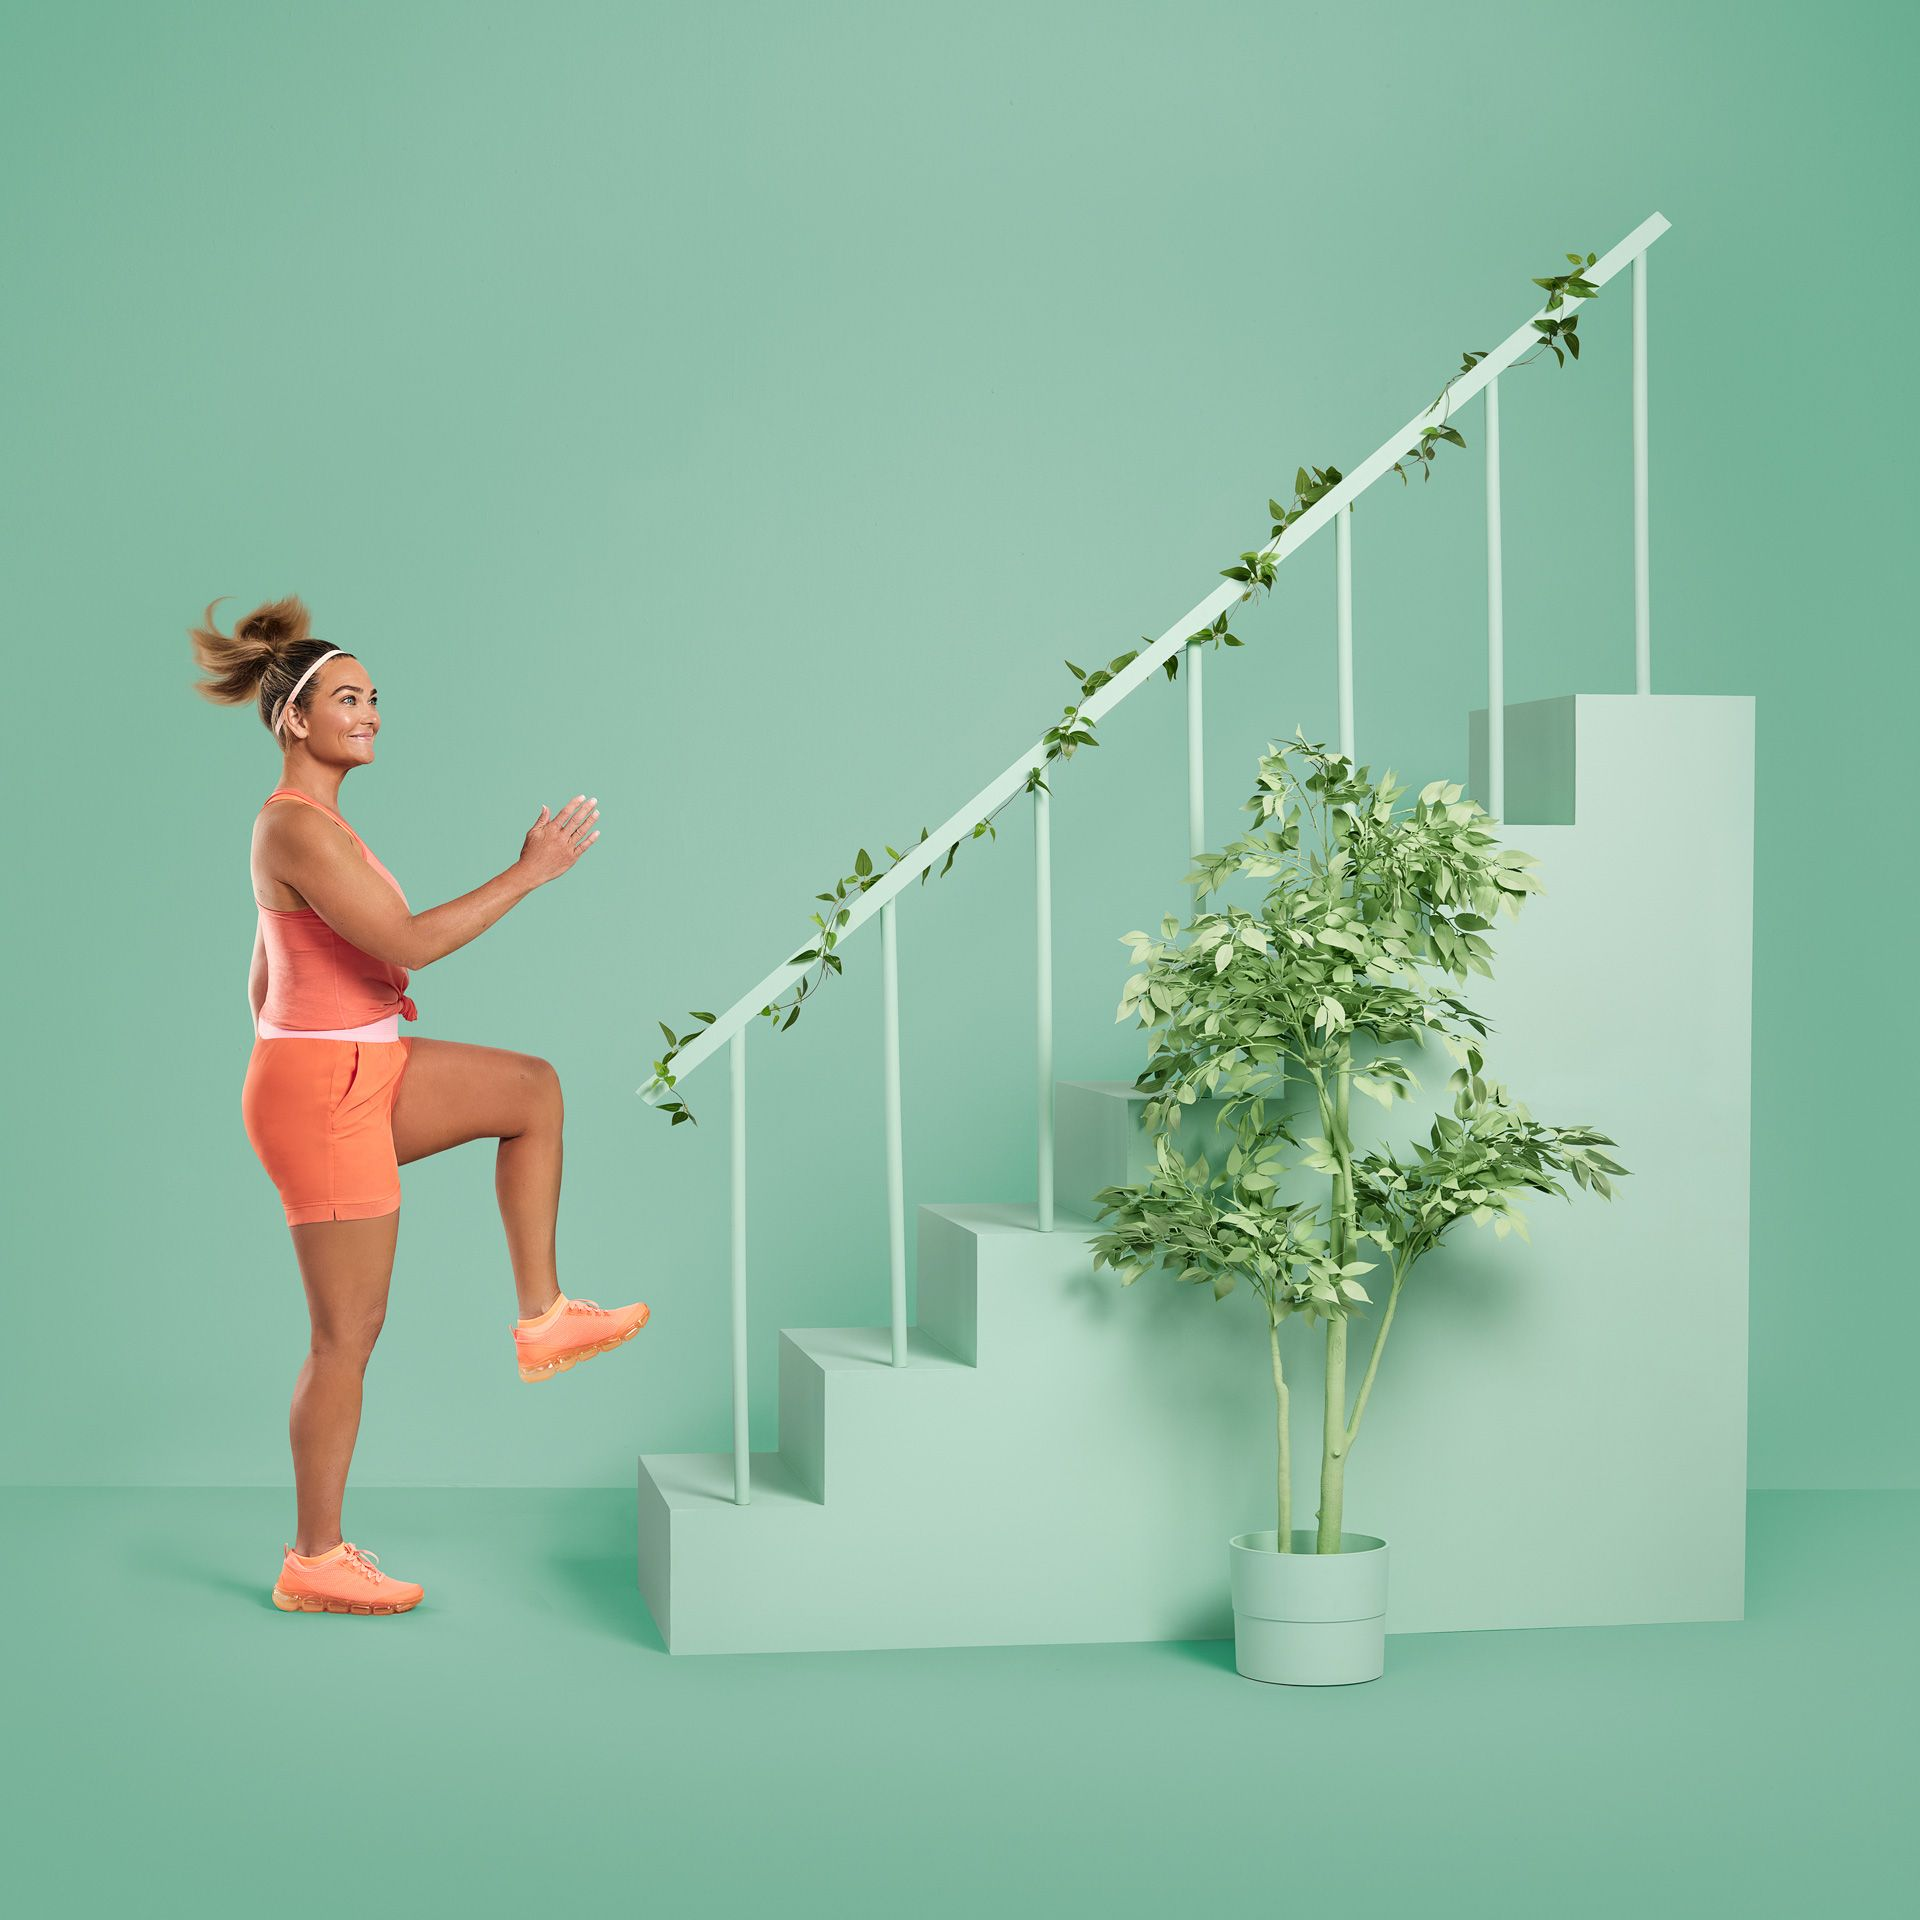 white women dressed in orange going up the stairs on green background for YMCA by Jocelyn Michel